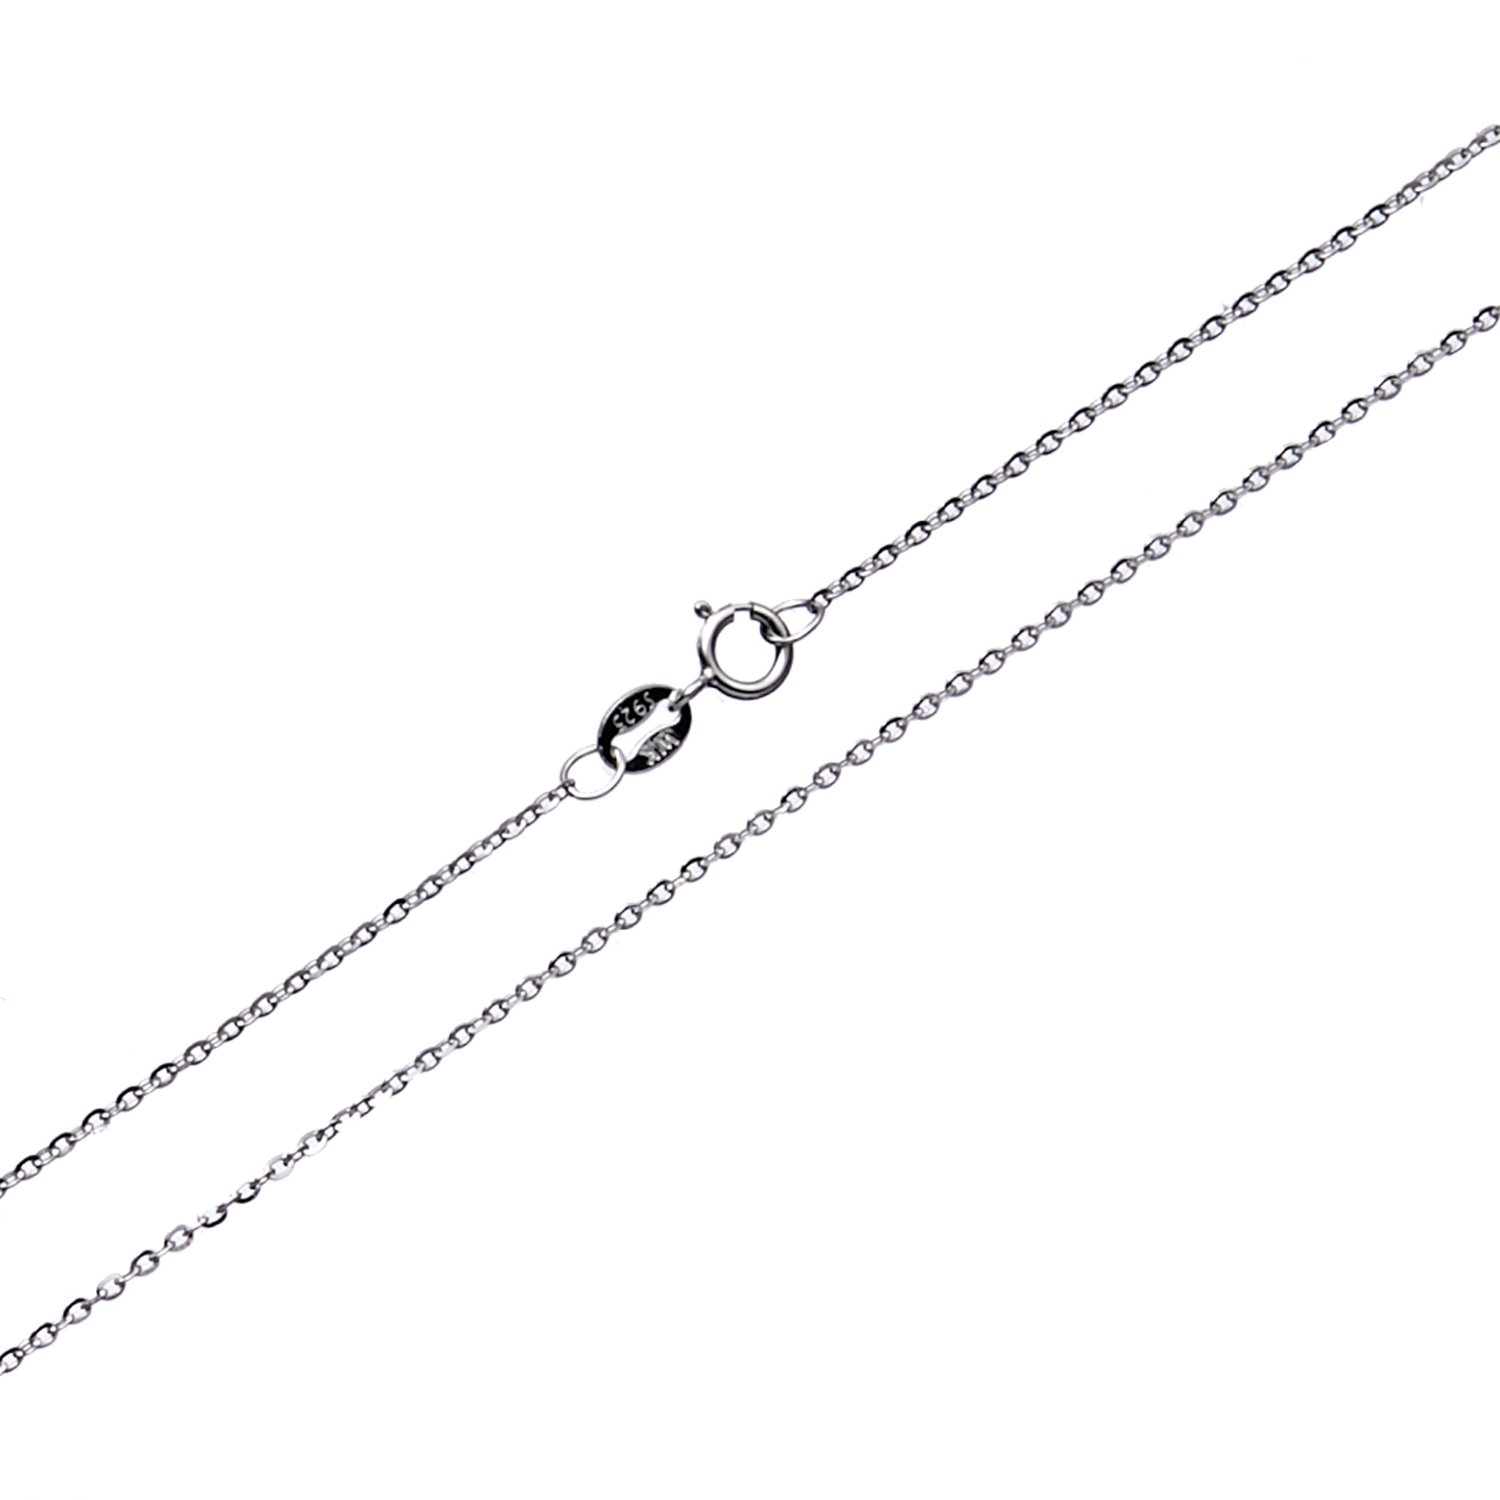 Wellme Sterling Silver Gliding Rolo Cable Chain Necklace 16''-24'' (1mm Width 55cm (22 inches))